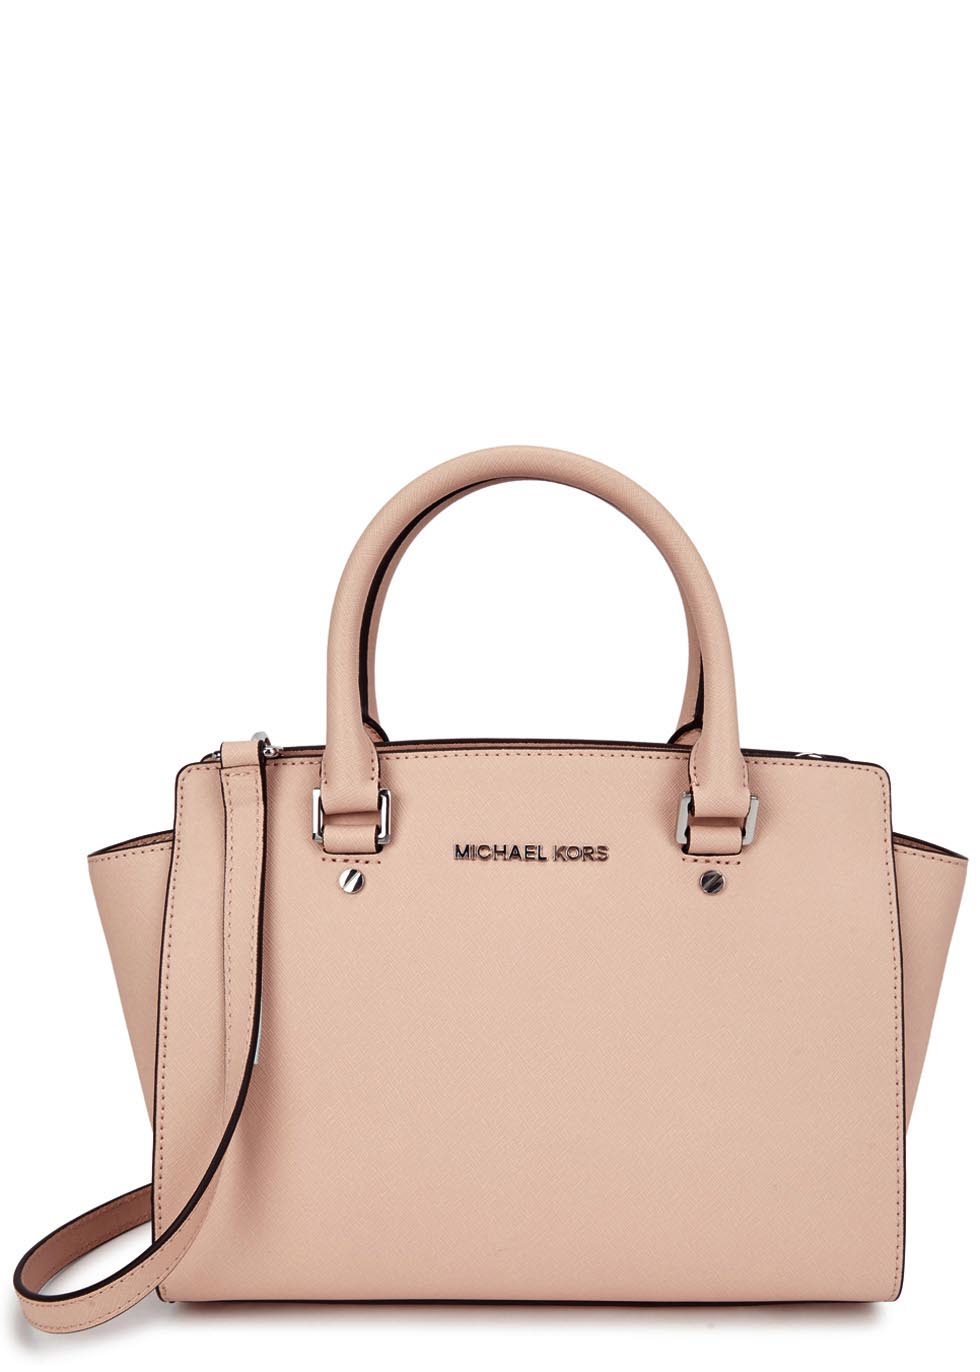 675a085489f6 Michael Kors Selma Medium Blush Leather Tote in Pink - Lyst